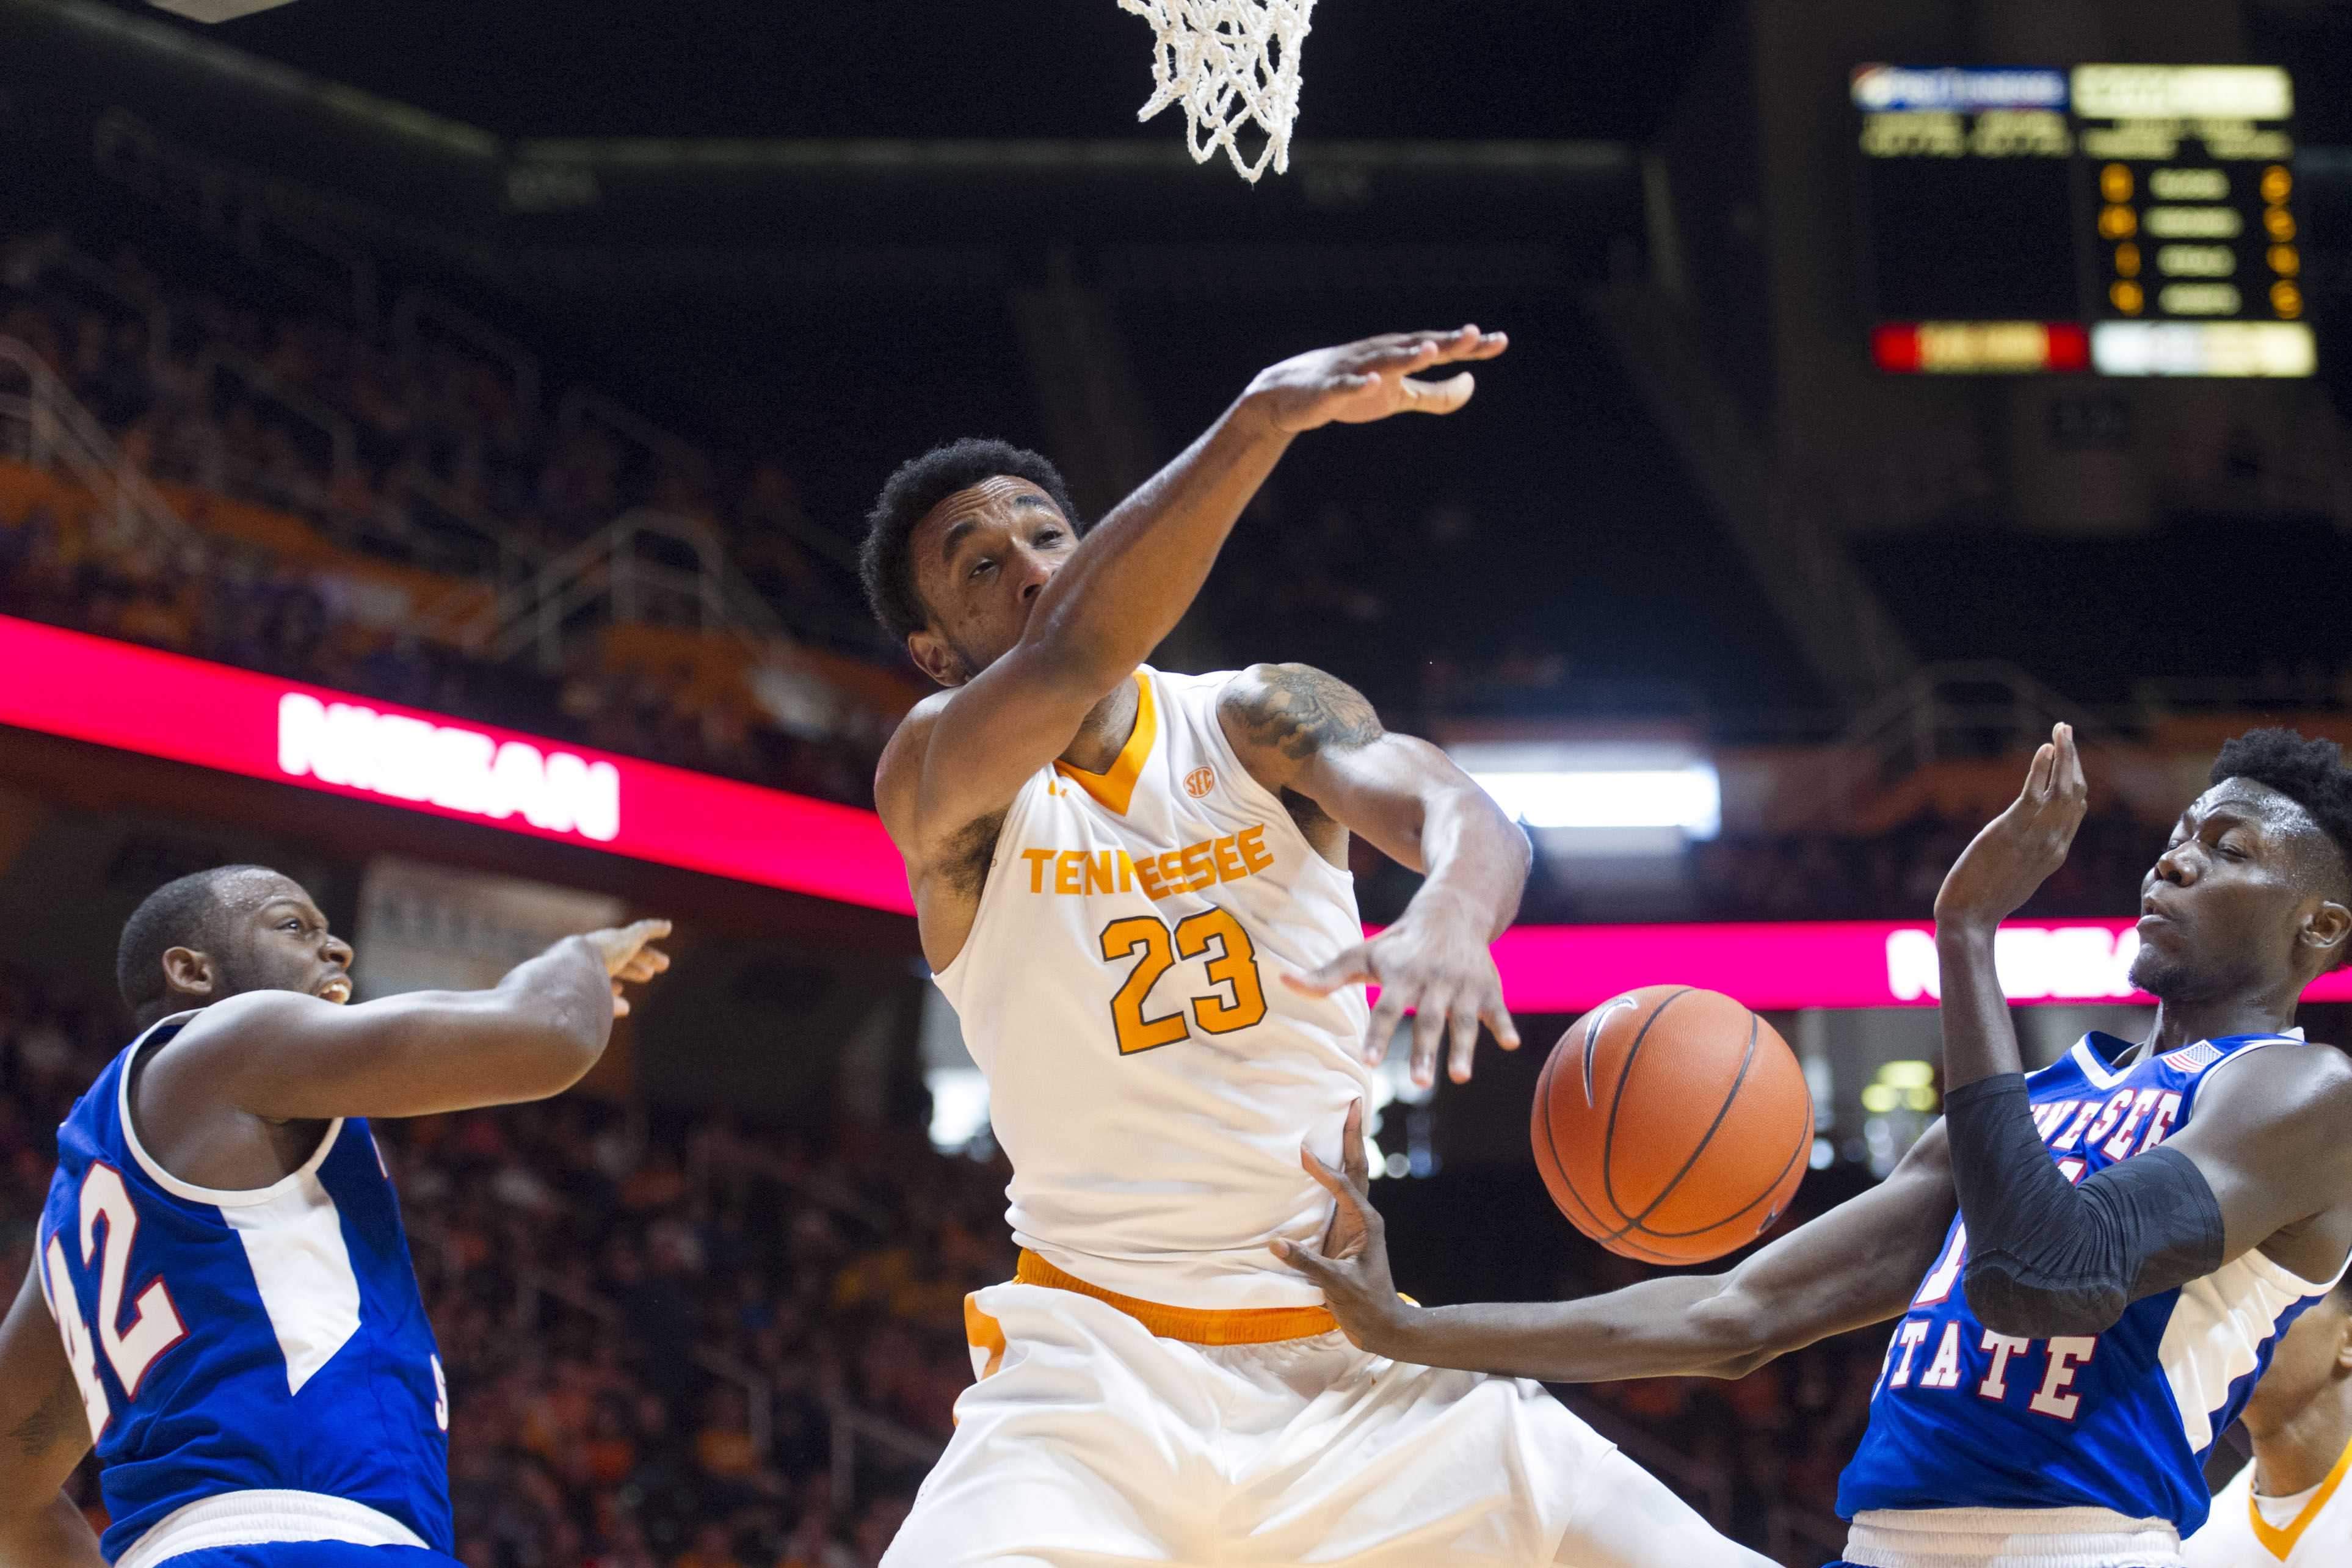 Tennessee's Derek Reese (23) is fouled while trying to score between Tennessee State's Christian Griggs-Williams, left, and Demontez Loman during the first half of an NCAA college basketball game in Knoxville, Tenn., on Tuesday, Dec. 29, 2015.  Tennessee